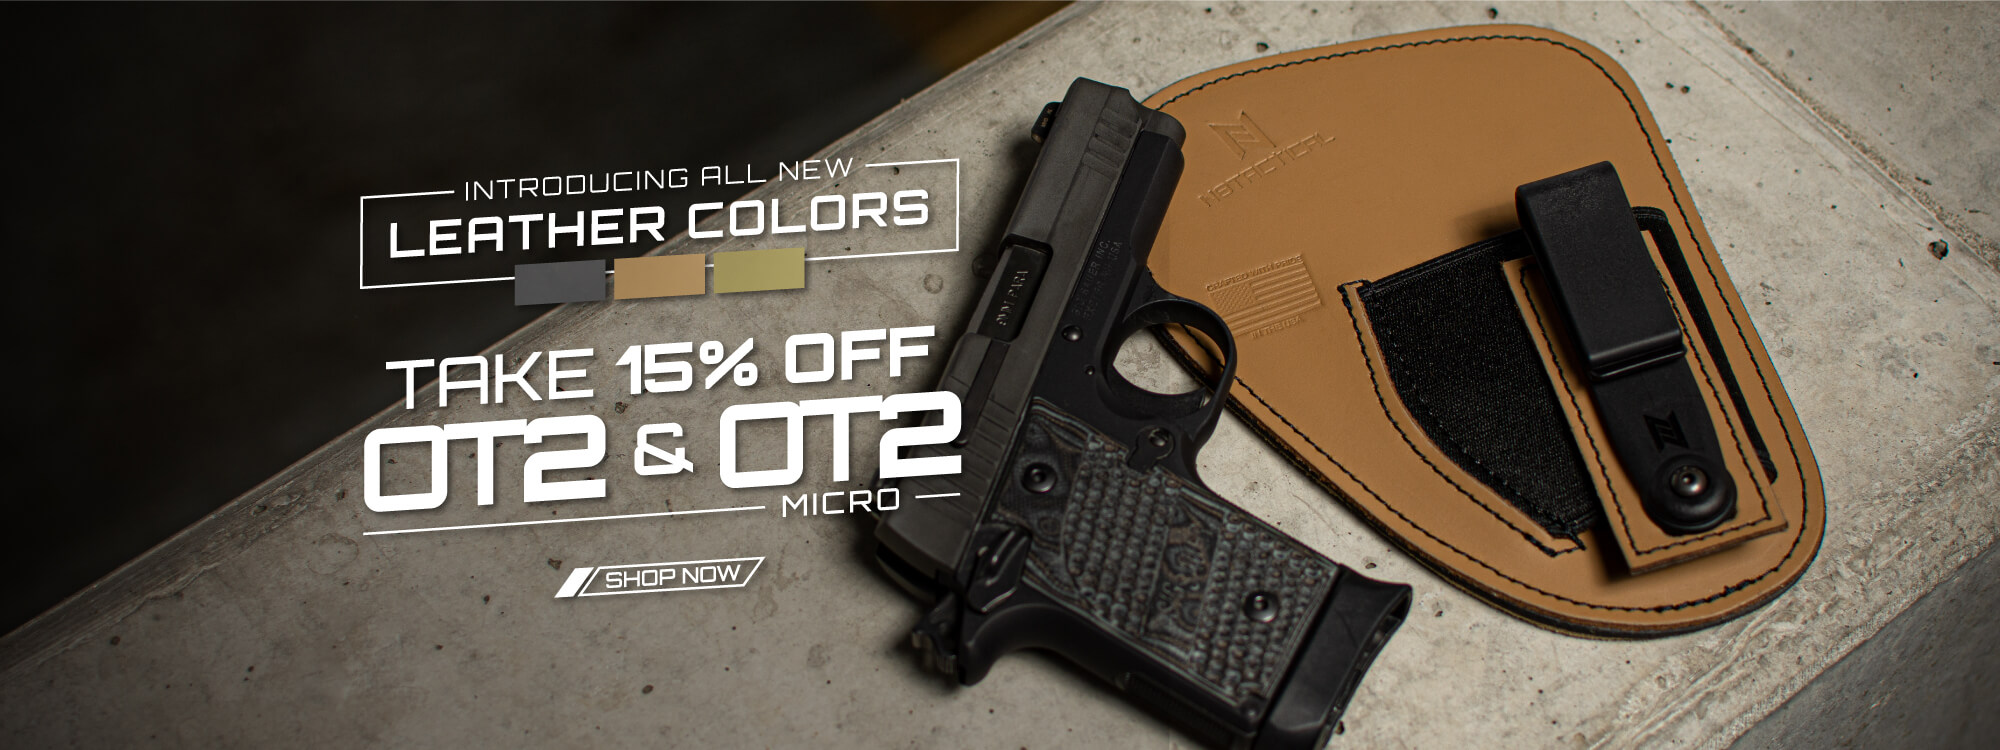 Take 15% Off OT2 & OT2 Micro with All New Colors